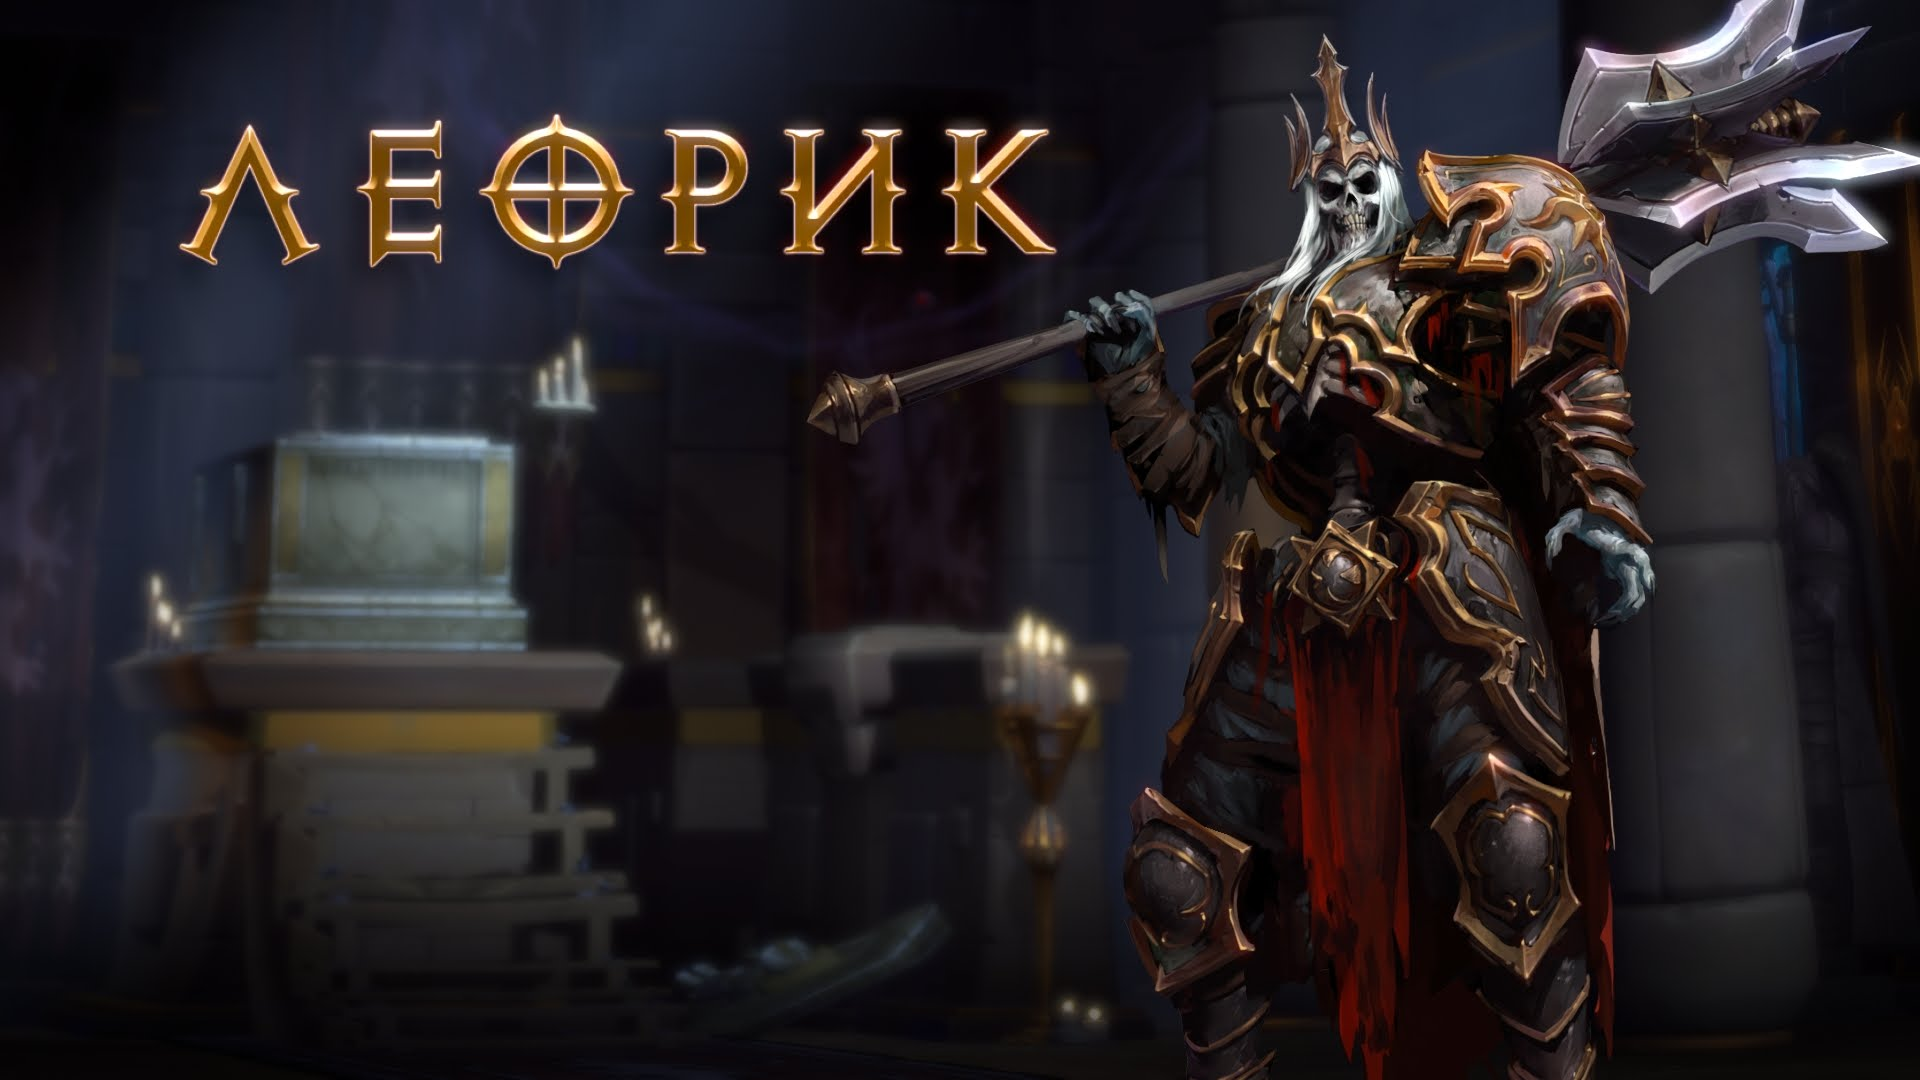 Heroes of the storm леорик